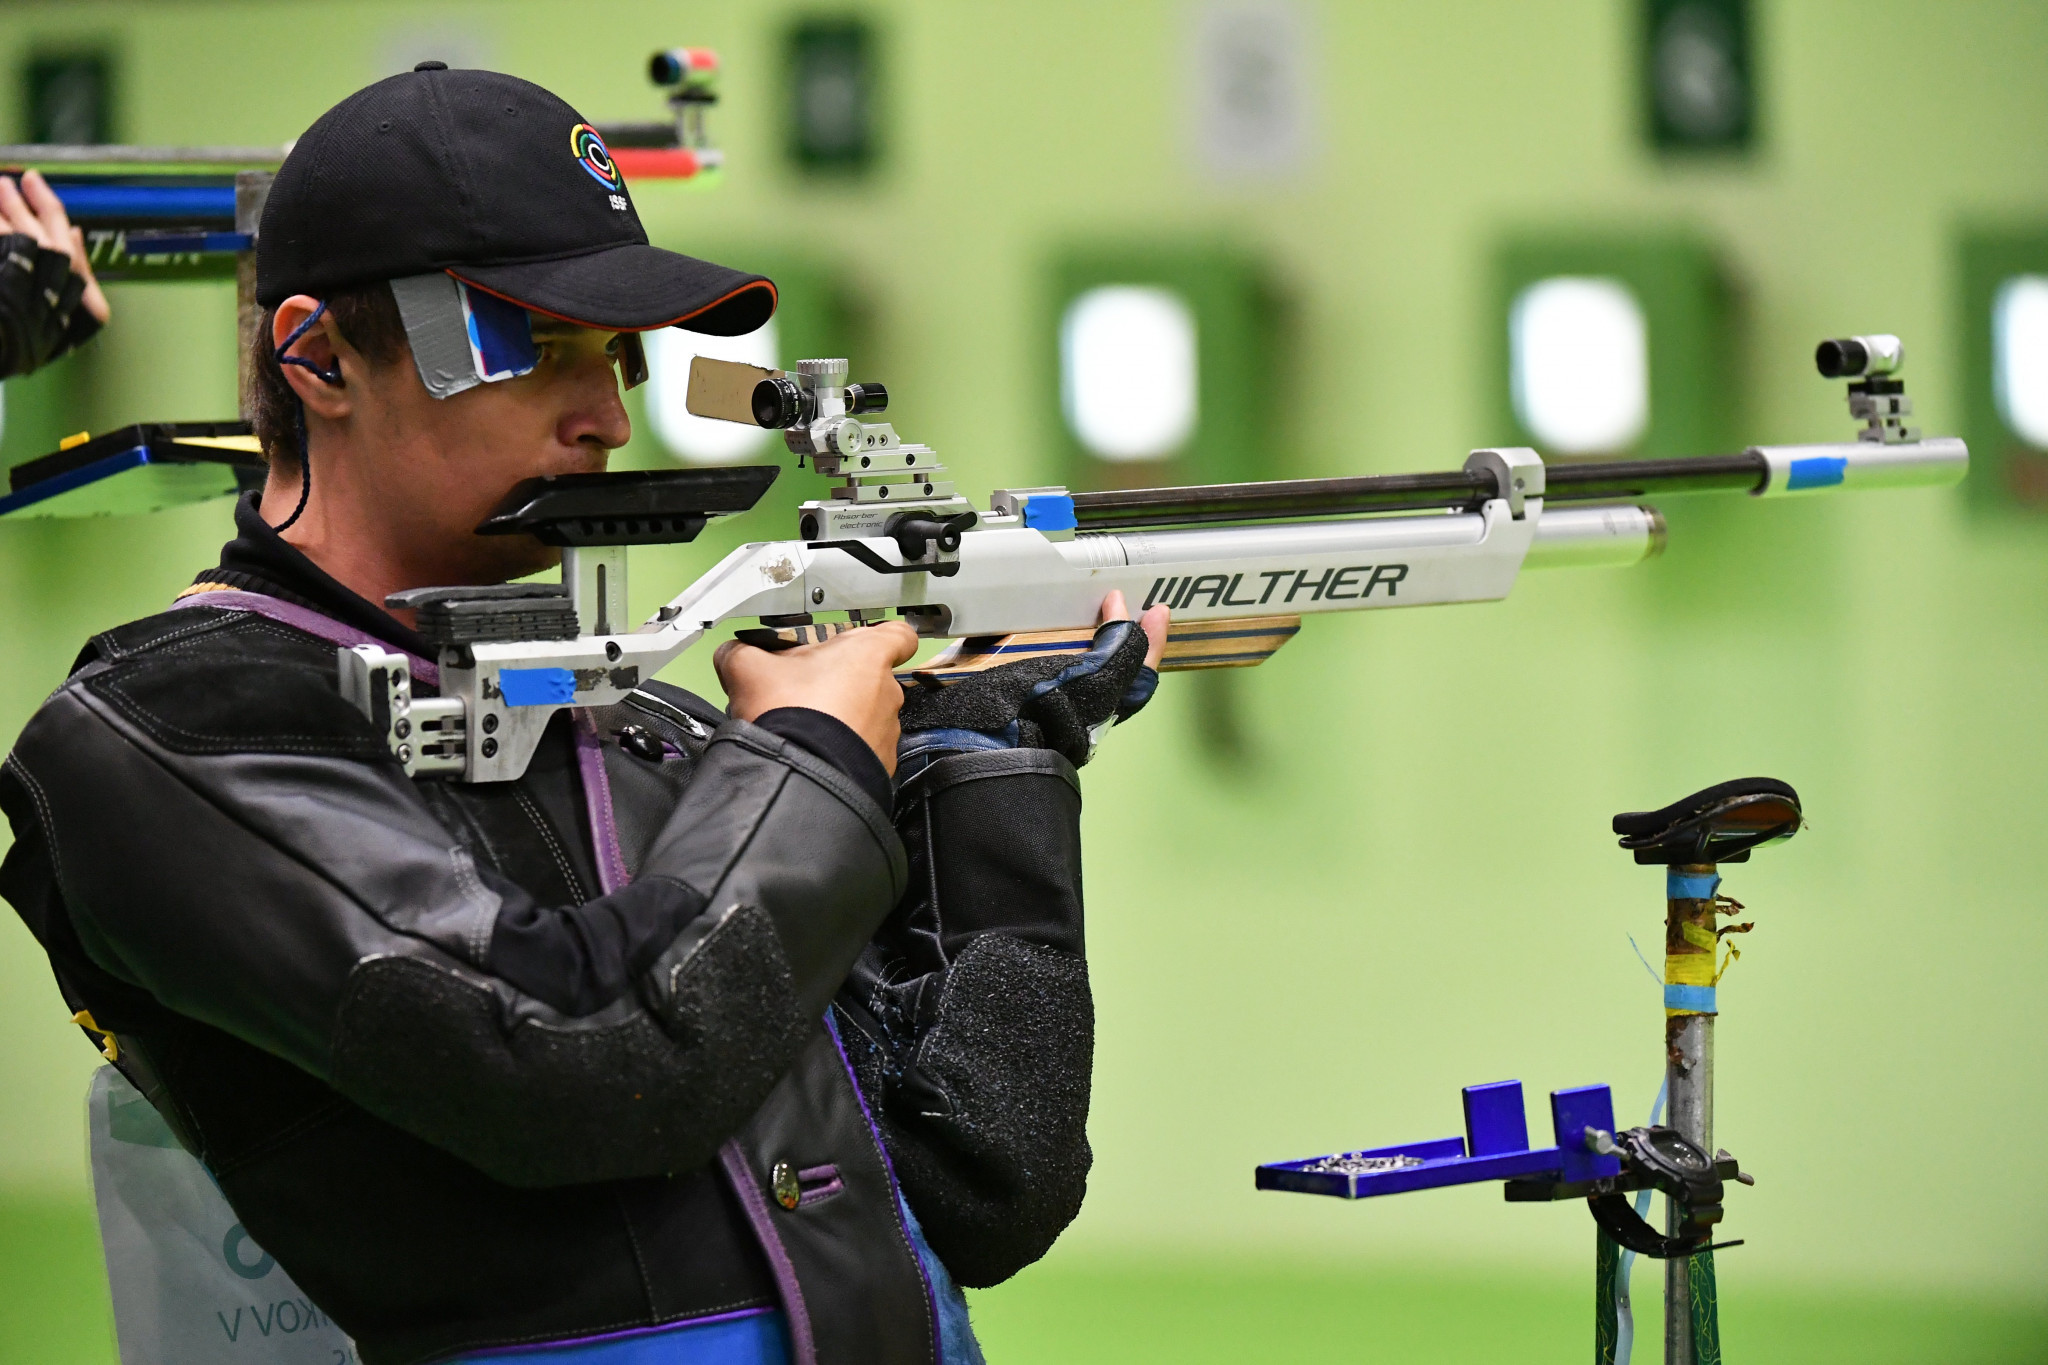 Vladimir Maslennikov defended his men's 10m air rifle title ©Getty Images